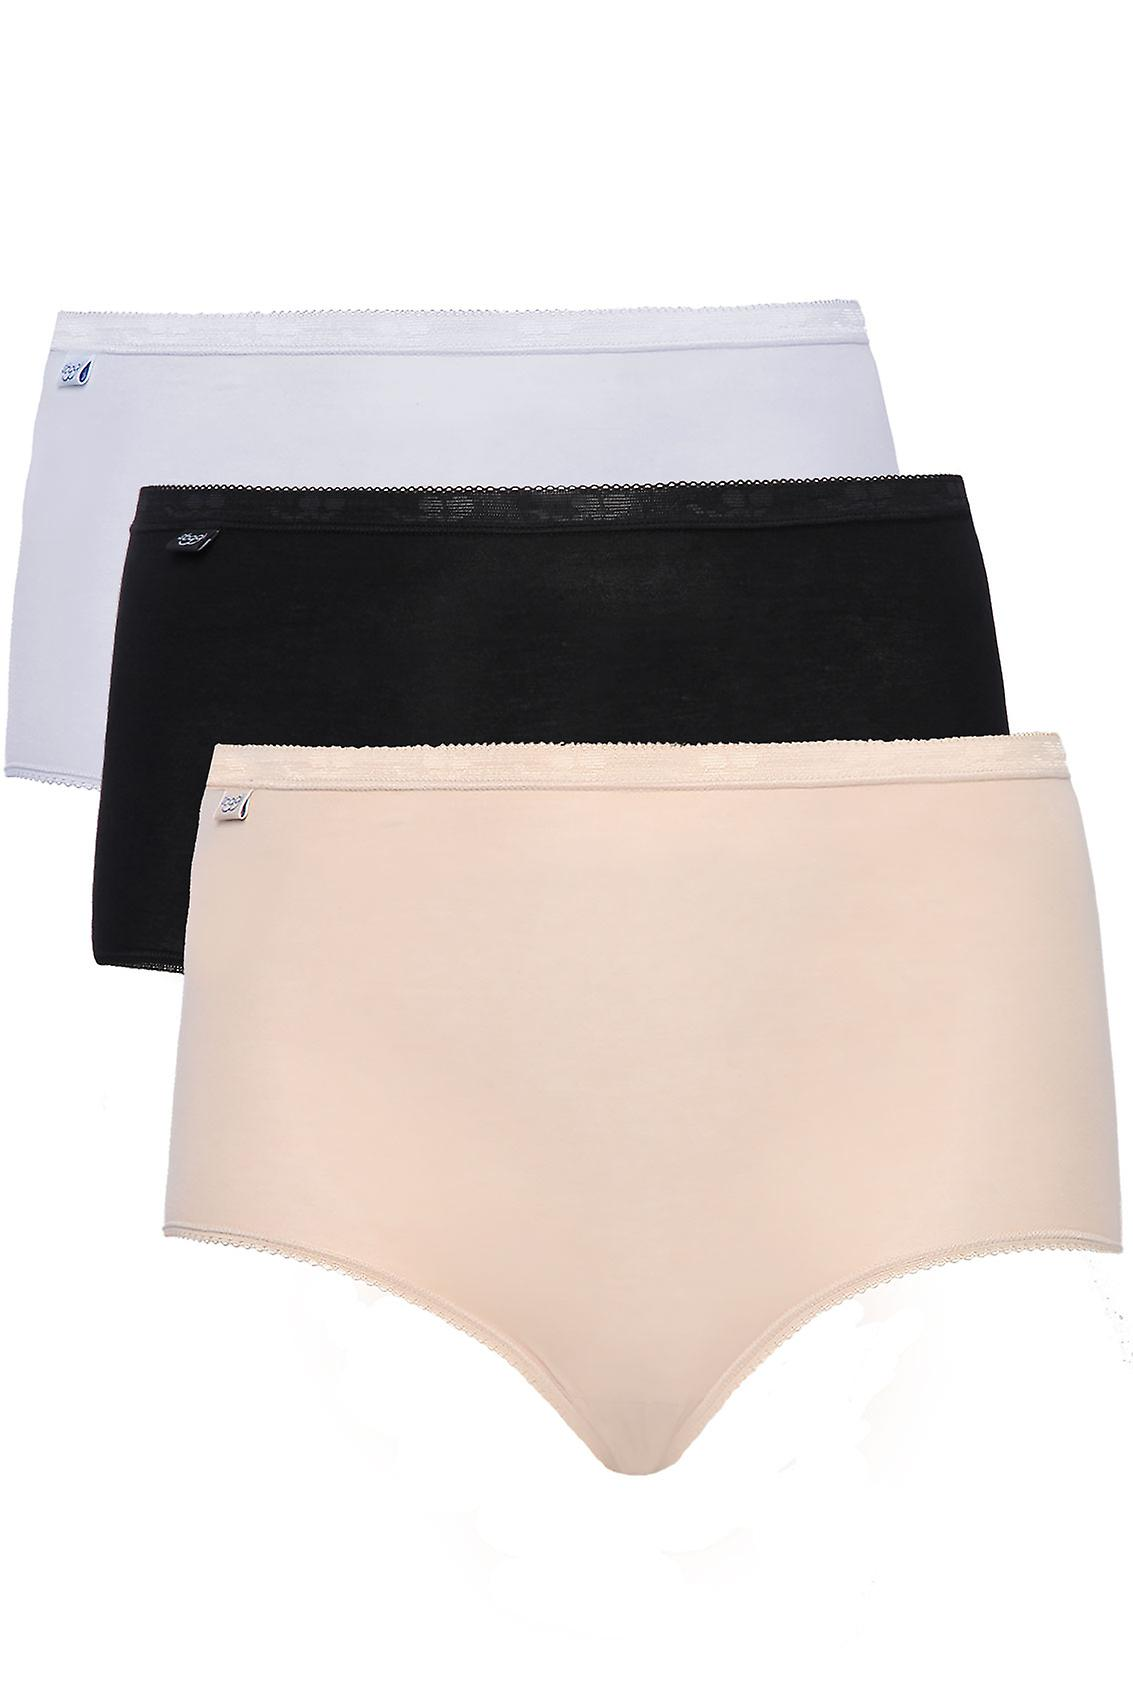 SLOGGI 3 PACK Black, White And Nude Basic Maxi Briefs